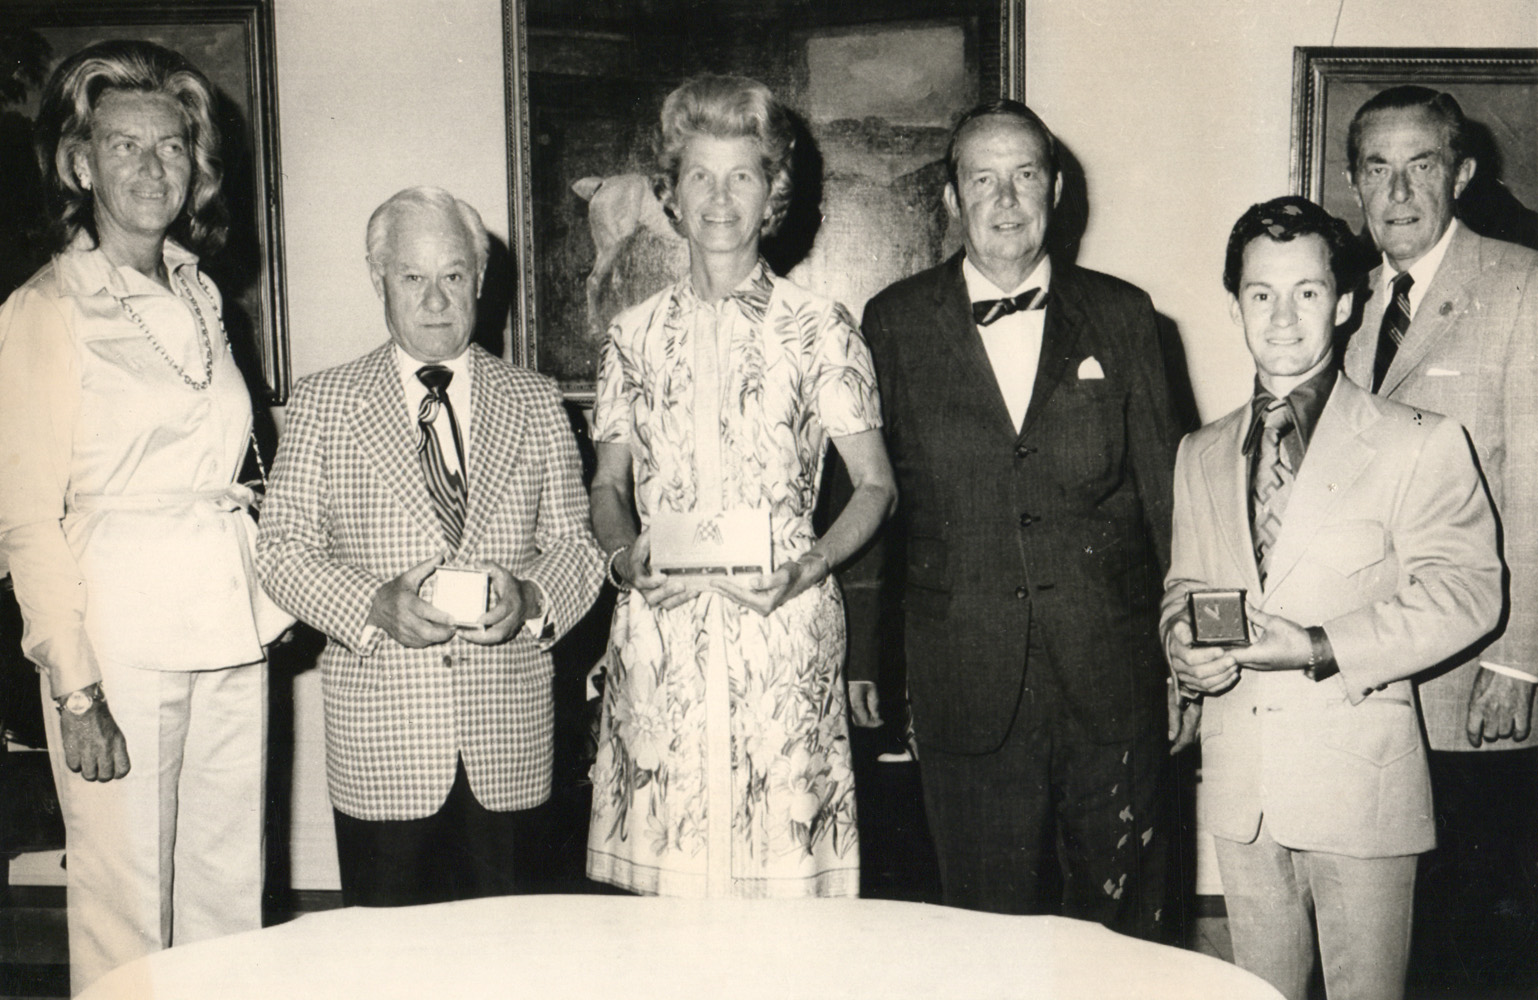 The winning connections of Secretariat Mr. and Mrs. Walter Jeffords of the Belmont Ball Committee and Charles E. Mather II, Museum President, at the National Museum of Racing in August 1974 (Bob Coglianese/Museum Collection)